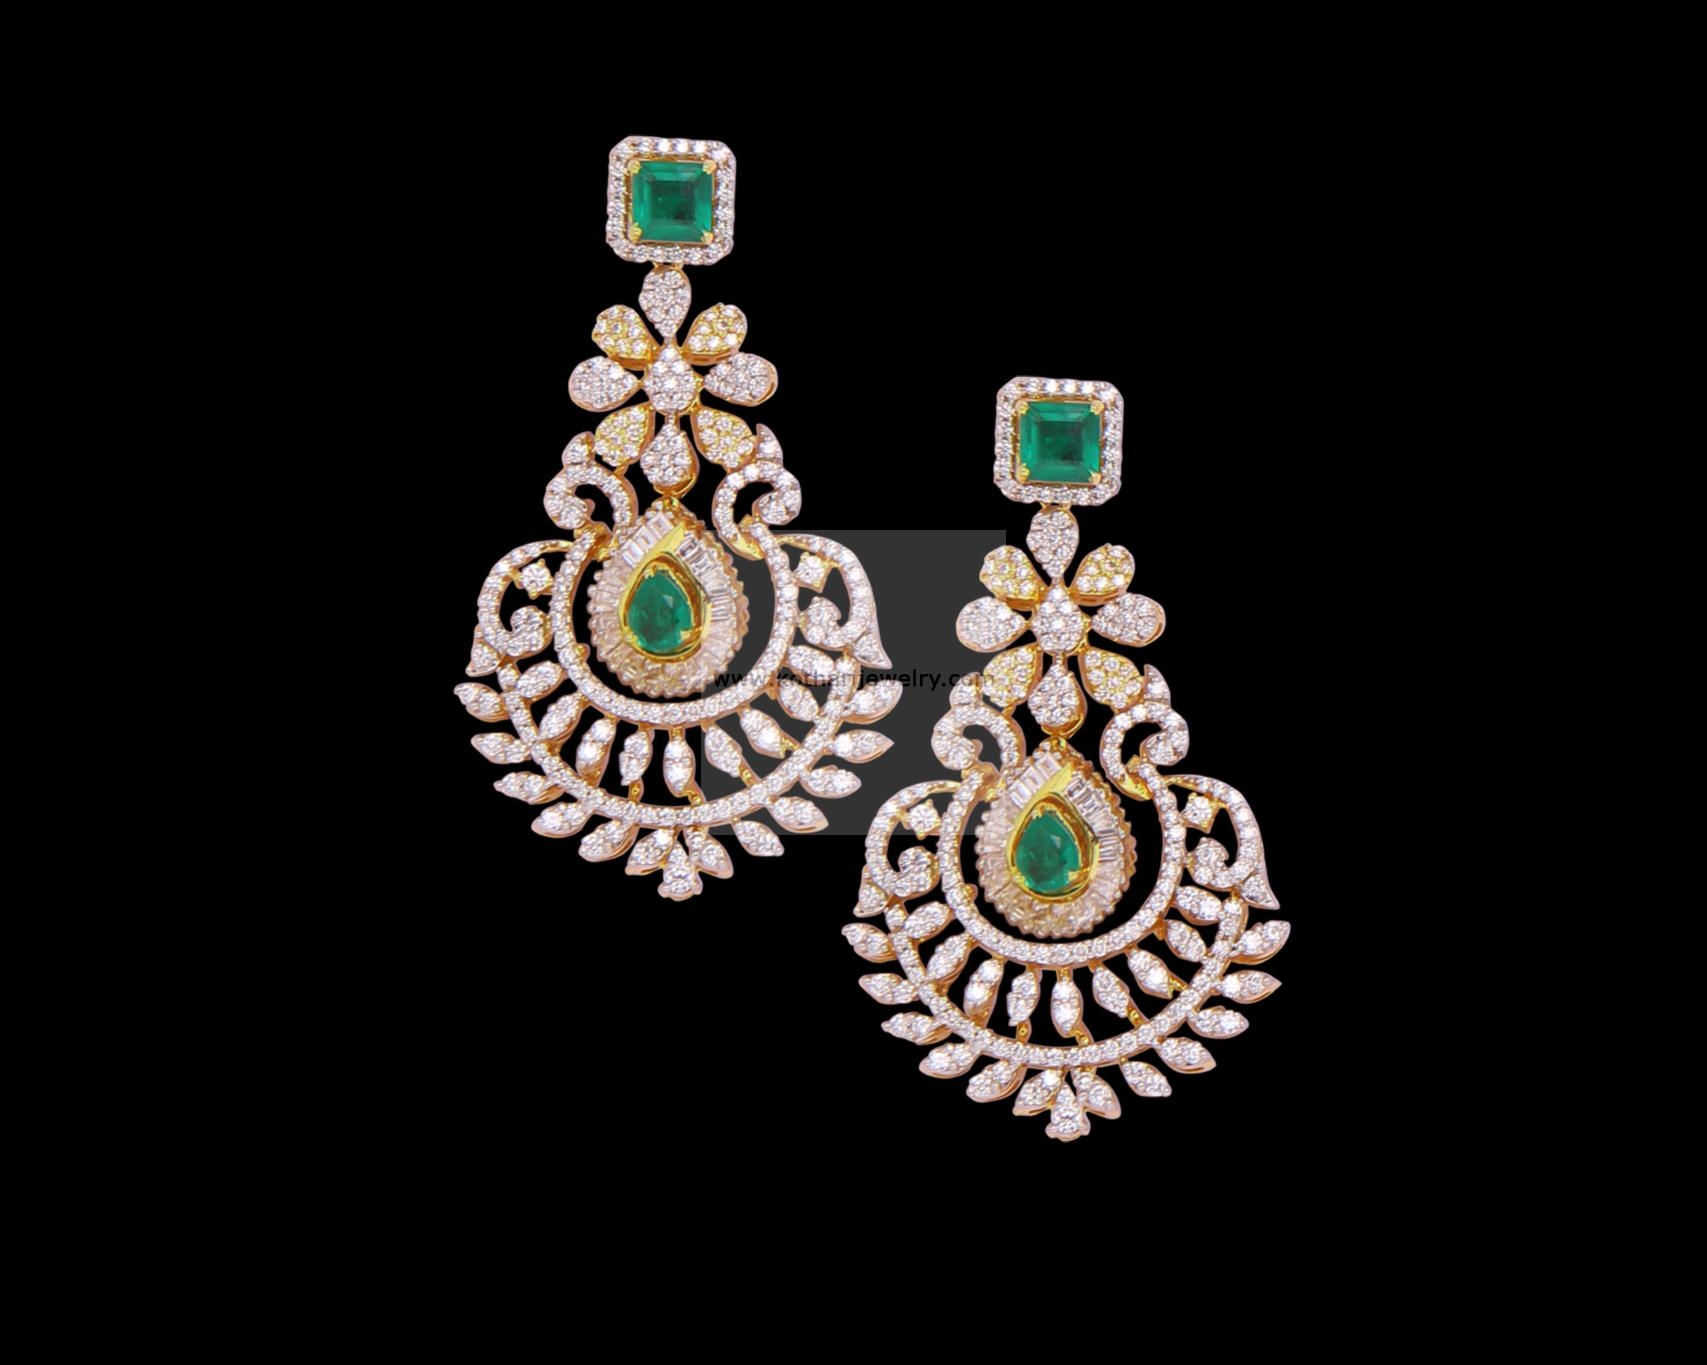 store buy cz women dp diamond prices pearls earrings low american at in jhumka jewels swasti amazon india for online jewellery ethnic